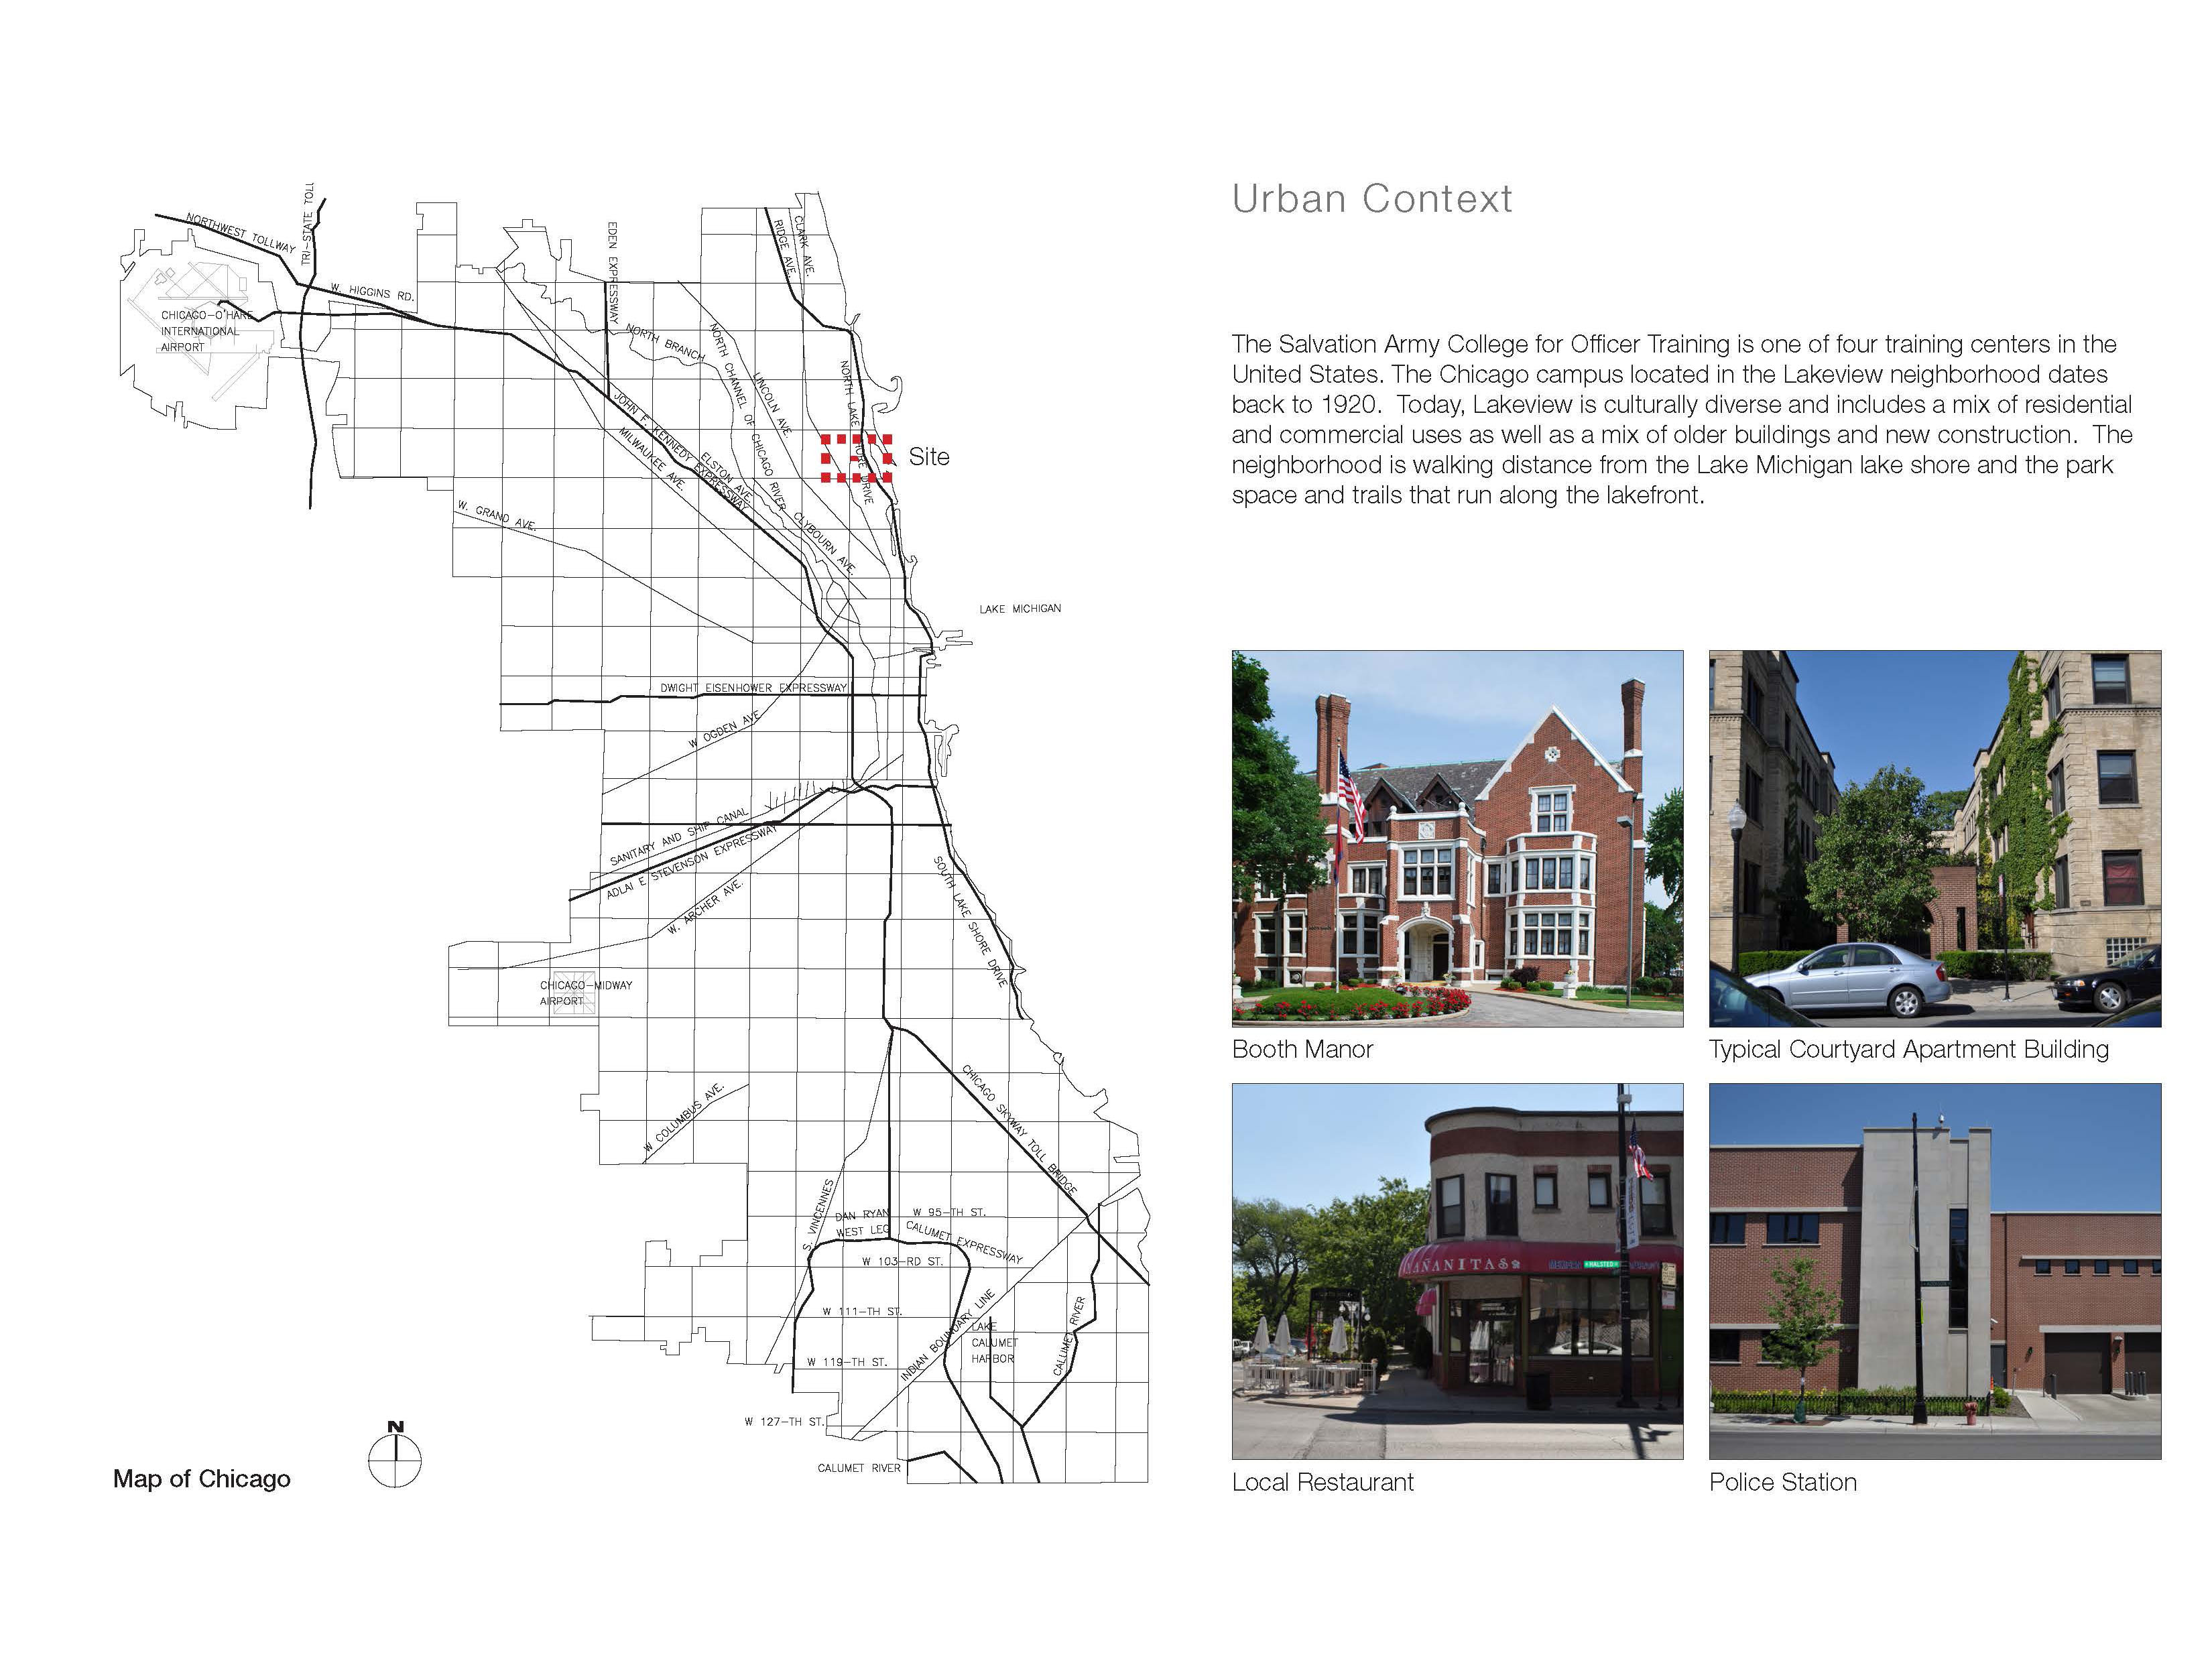 College for Officer Training Campus Master Plan · Projects